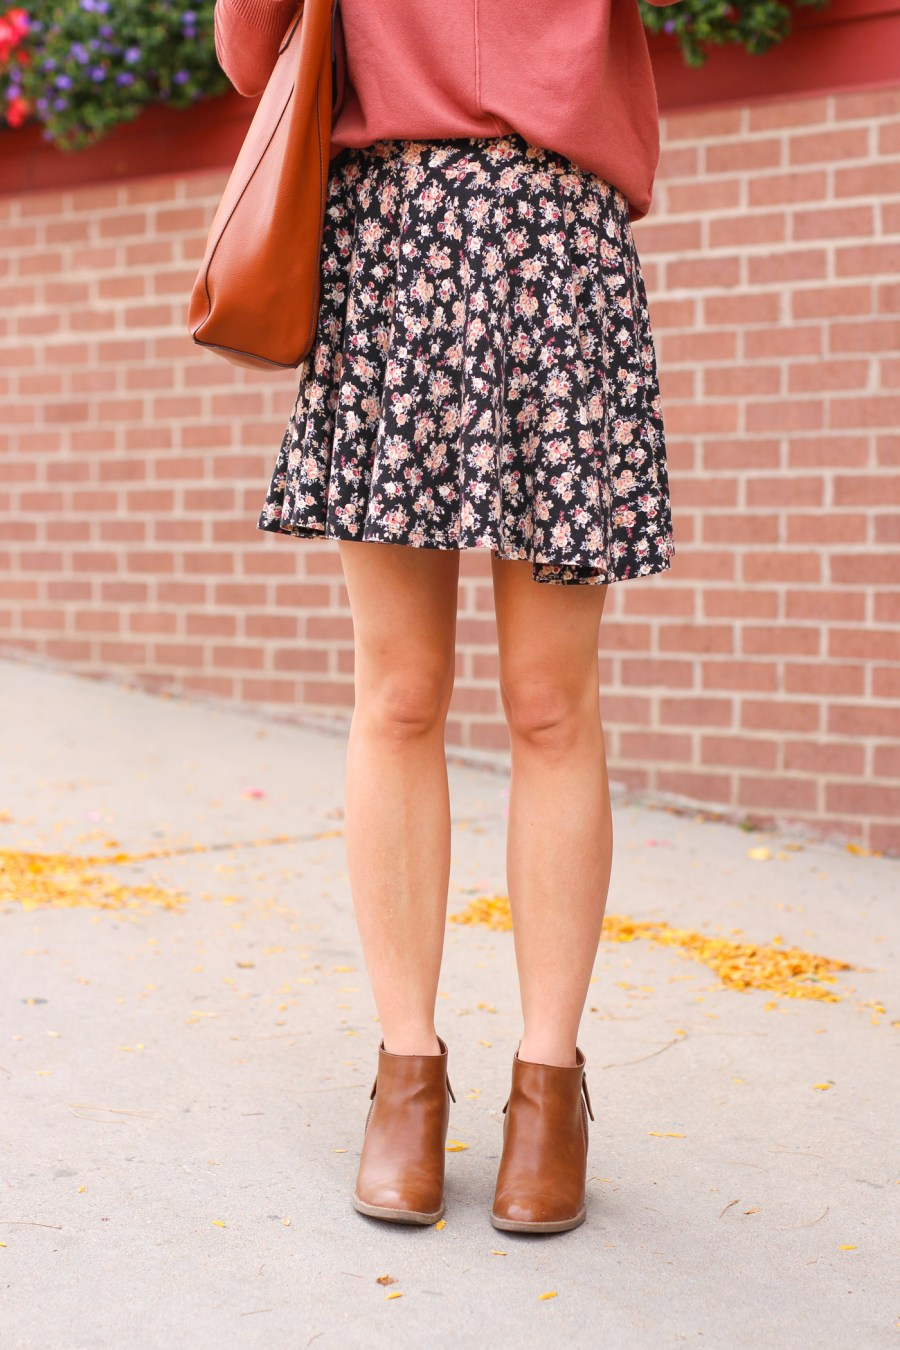 floral skirt, fall outfit, fashion blog, fall booties, women's fashion, Pinterest outfit